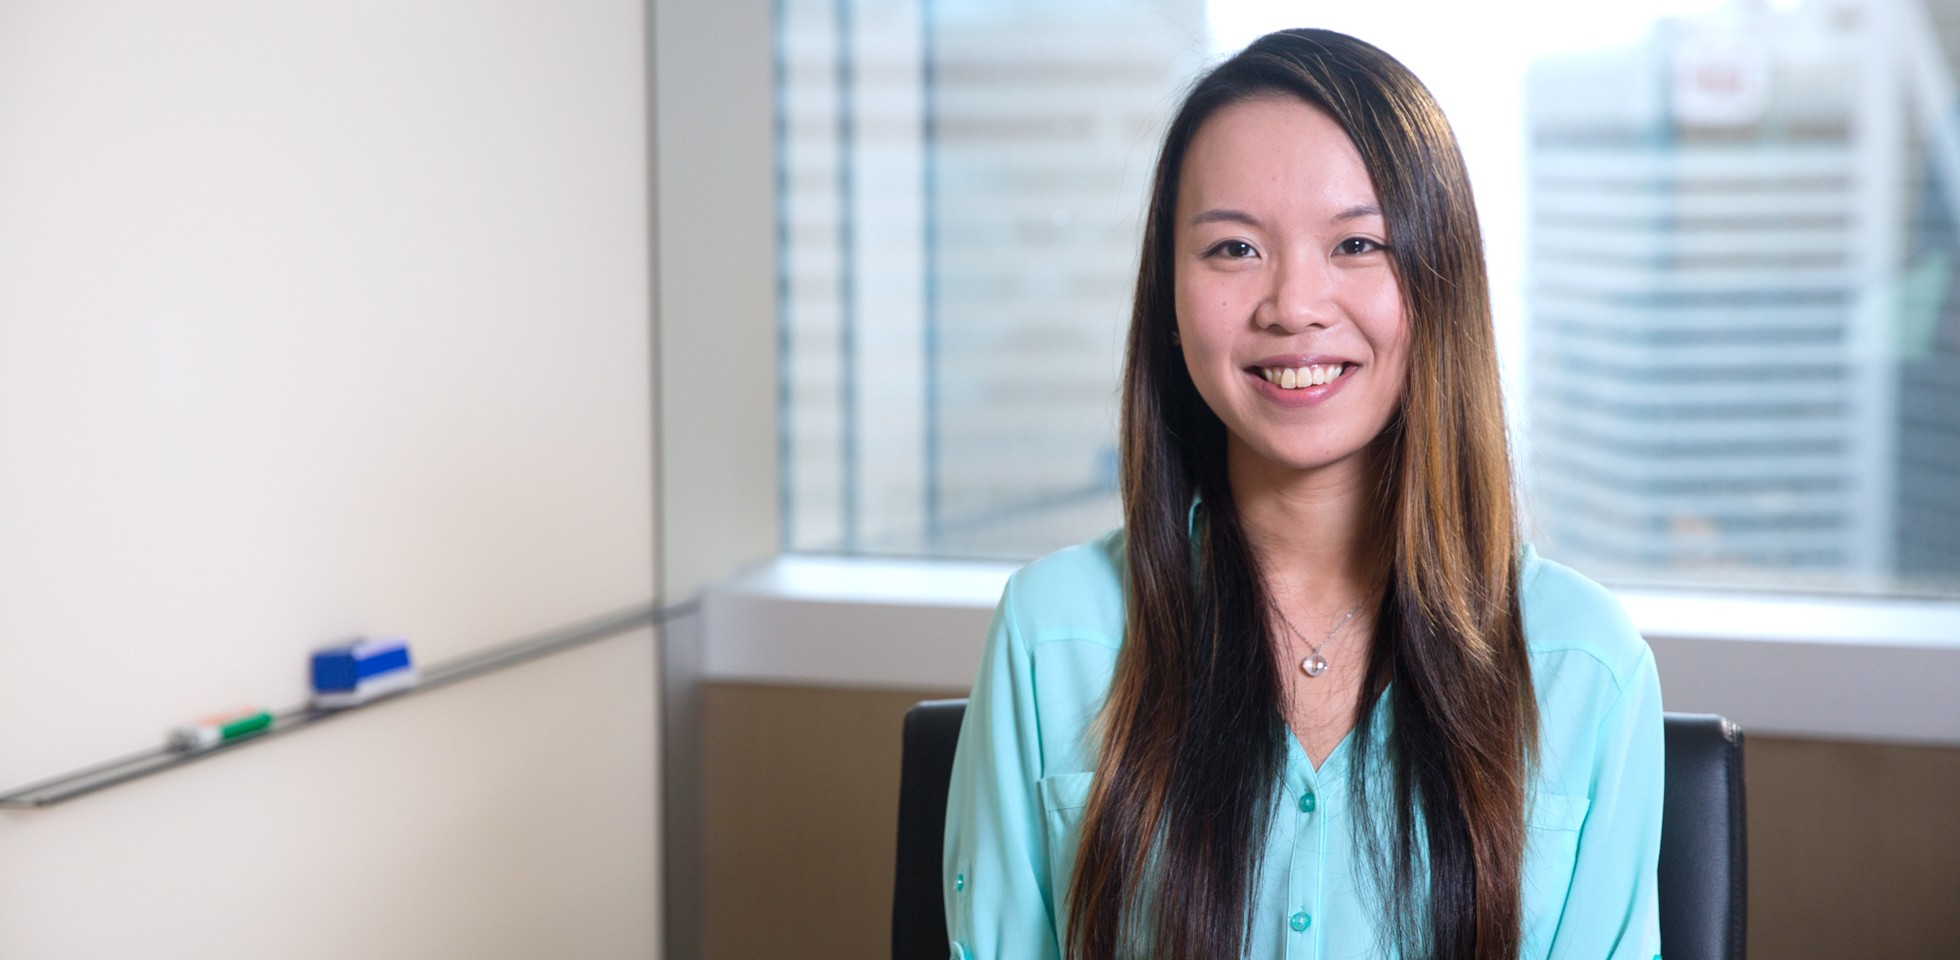 Kate, Analyst, Client Solutions - BlackRock Hong Kong Careers